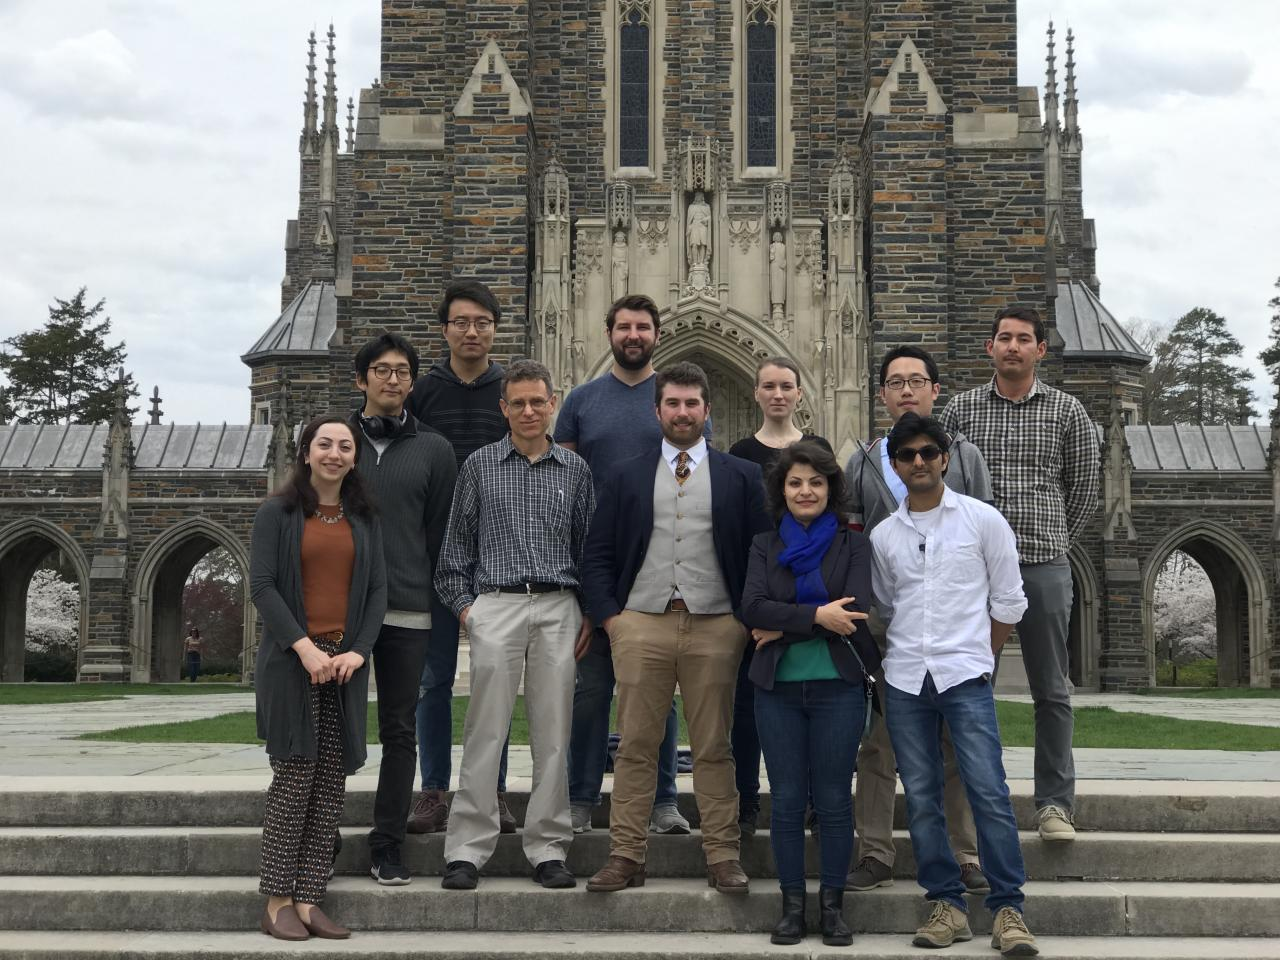 Mitzi group photo - post Wiley defense